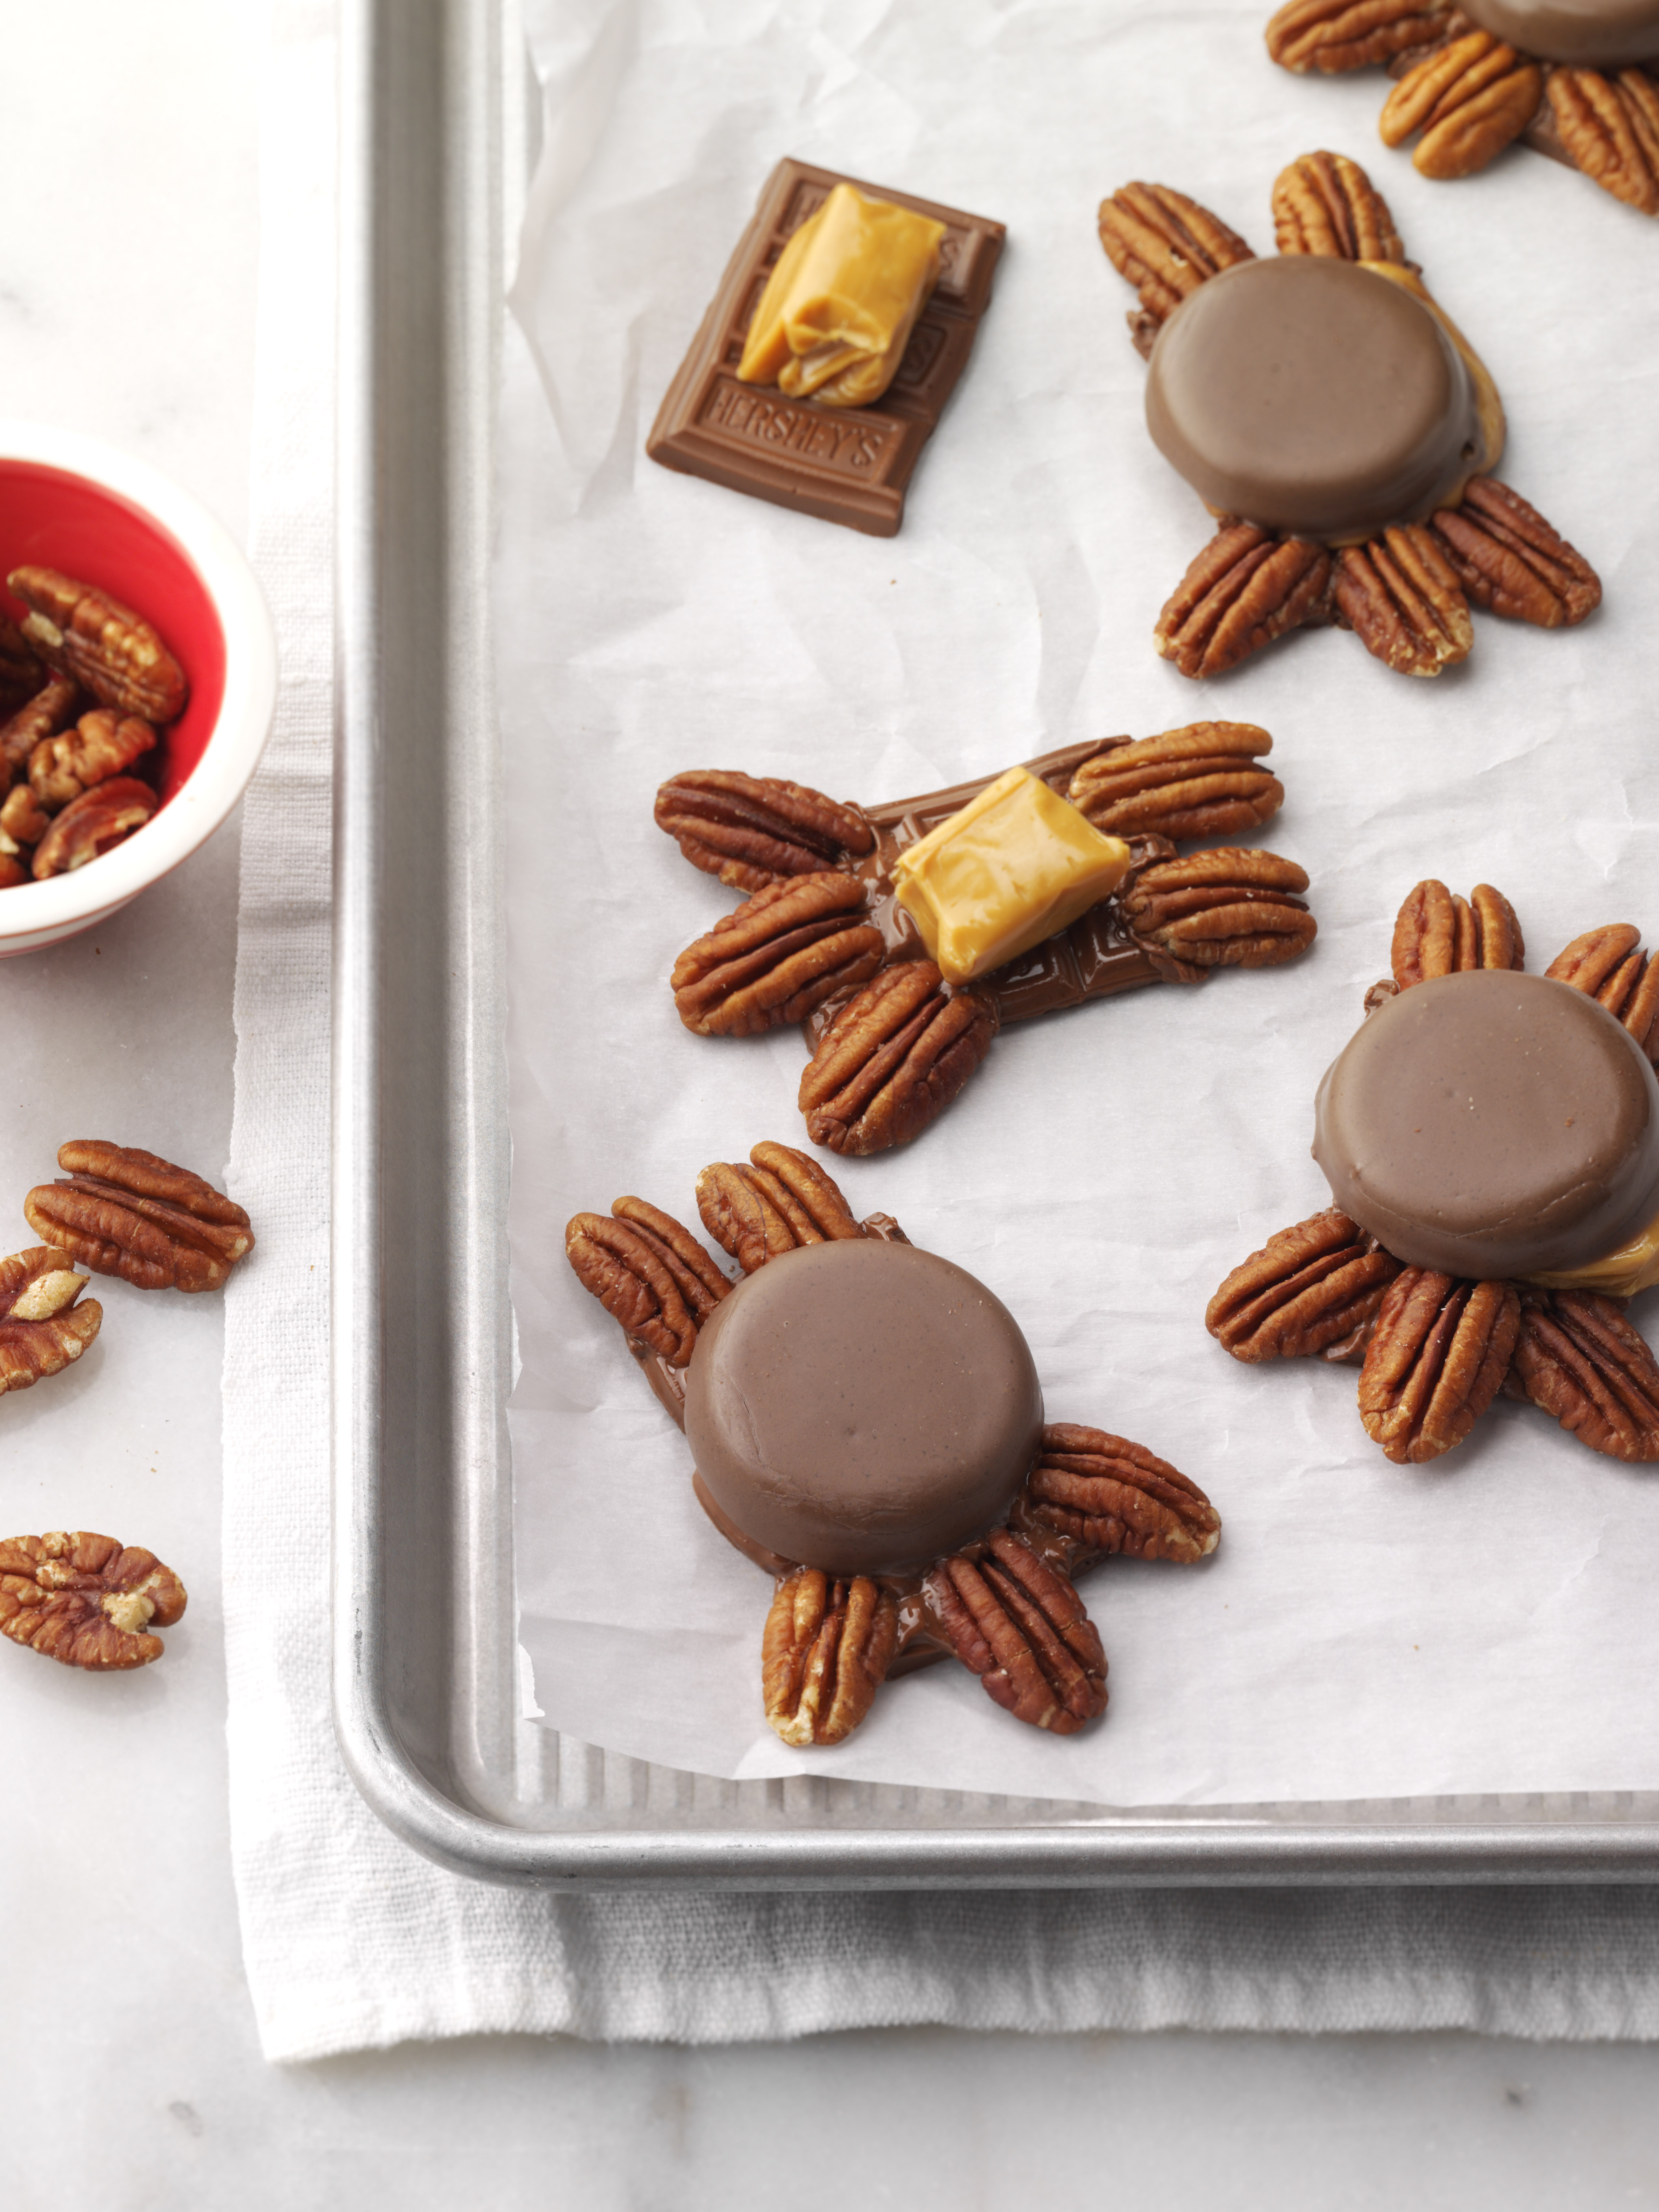 16 great recipes using girl scout cookies